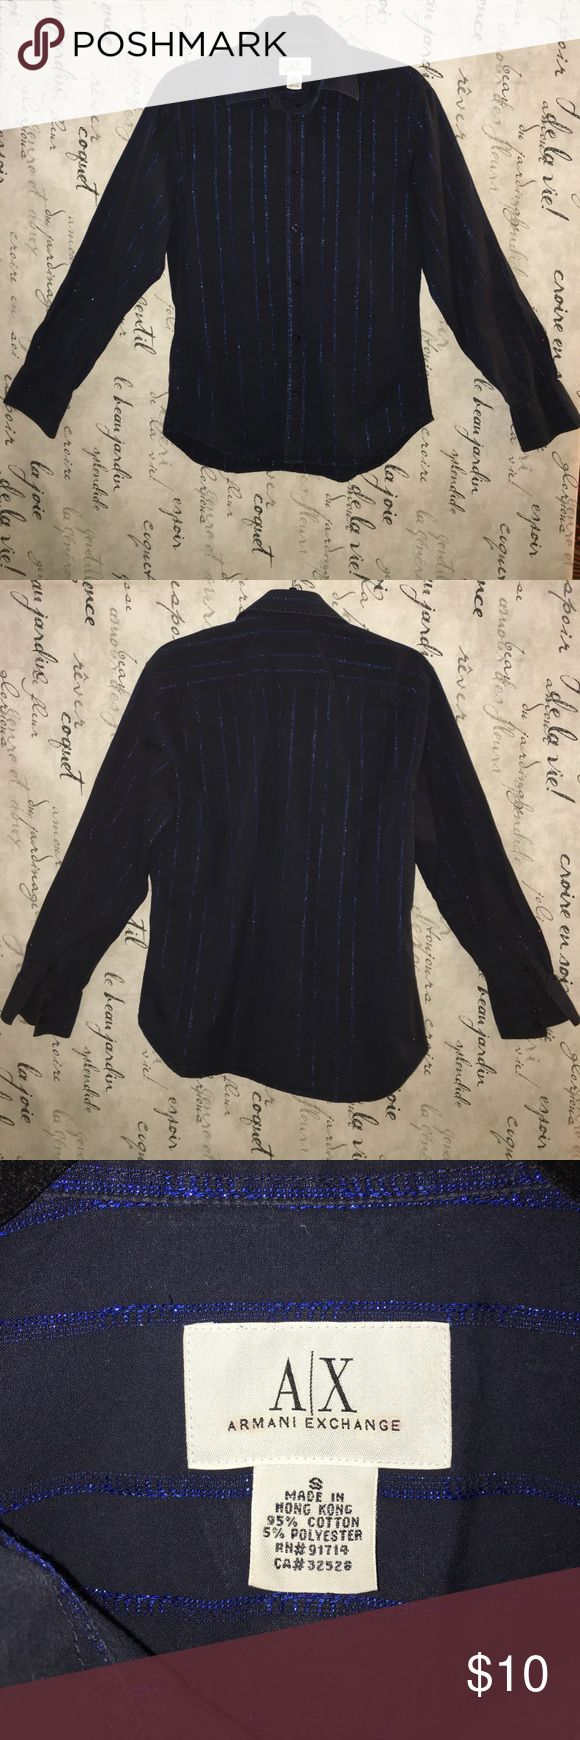 Armani black shirt with blue sparkle stripes Armani black shirt with blue sparkle stripes in great condition. No stains, rips or tears. A/X Armani Exchange Shirts Casual Button Down Shirts